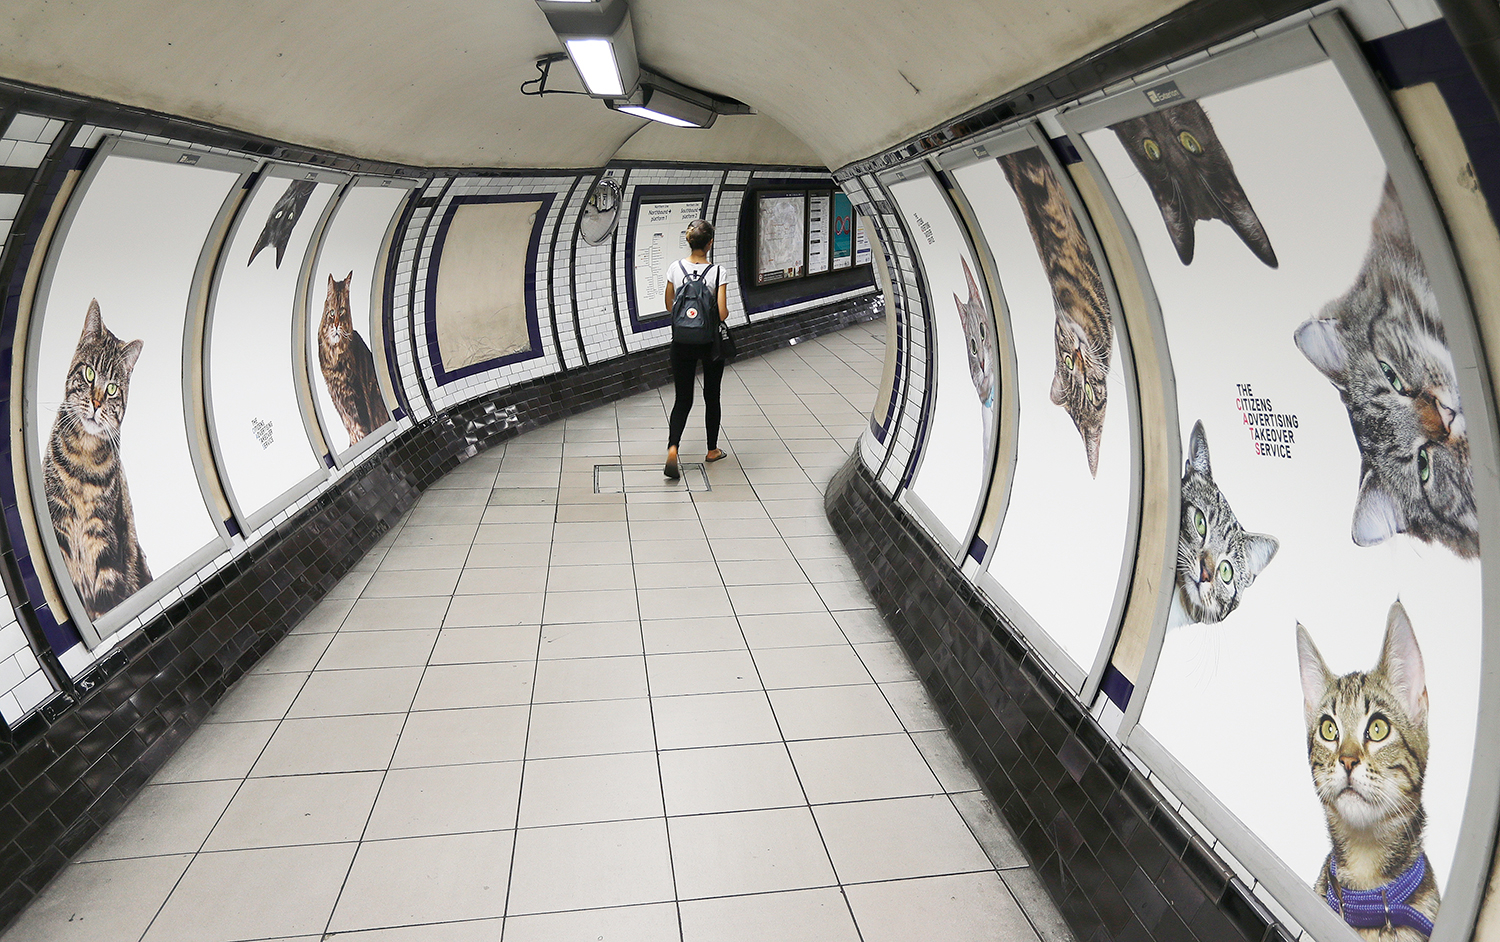 Cats fill the Clapham Common Tube station in London, Tuesday, Sept. 13, 2016